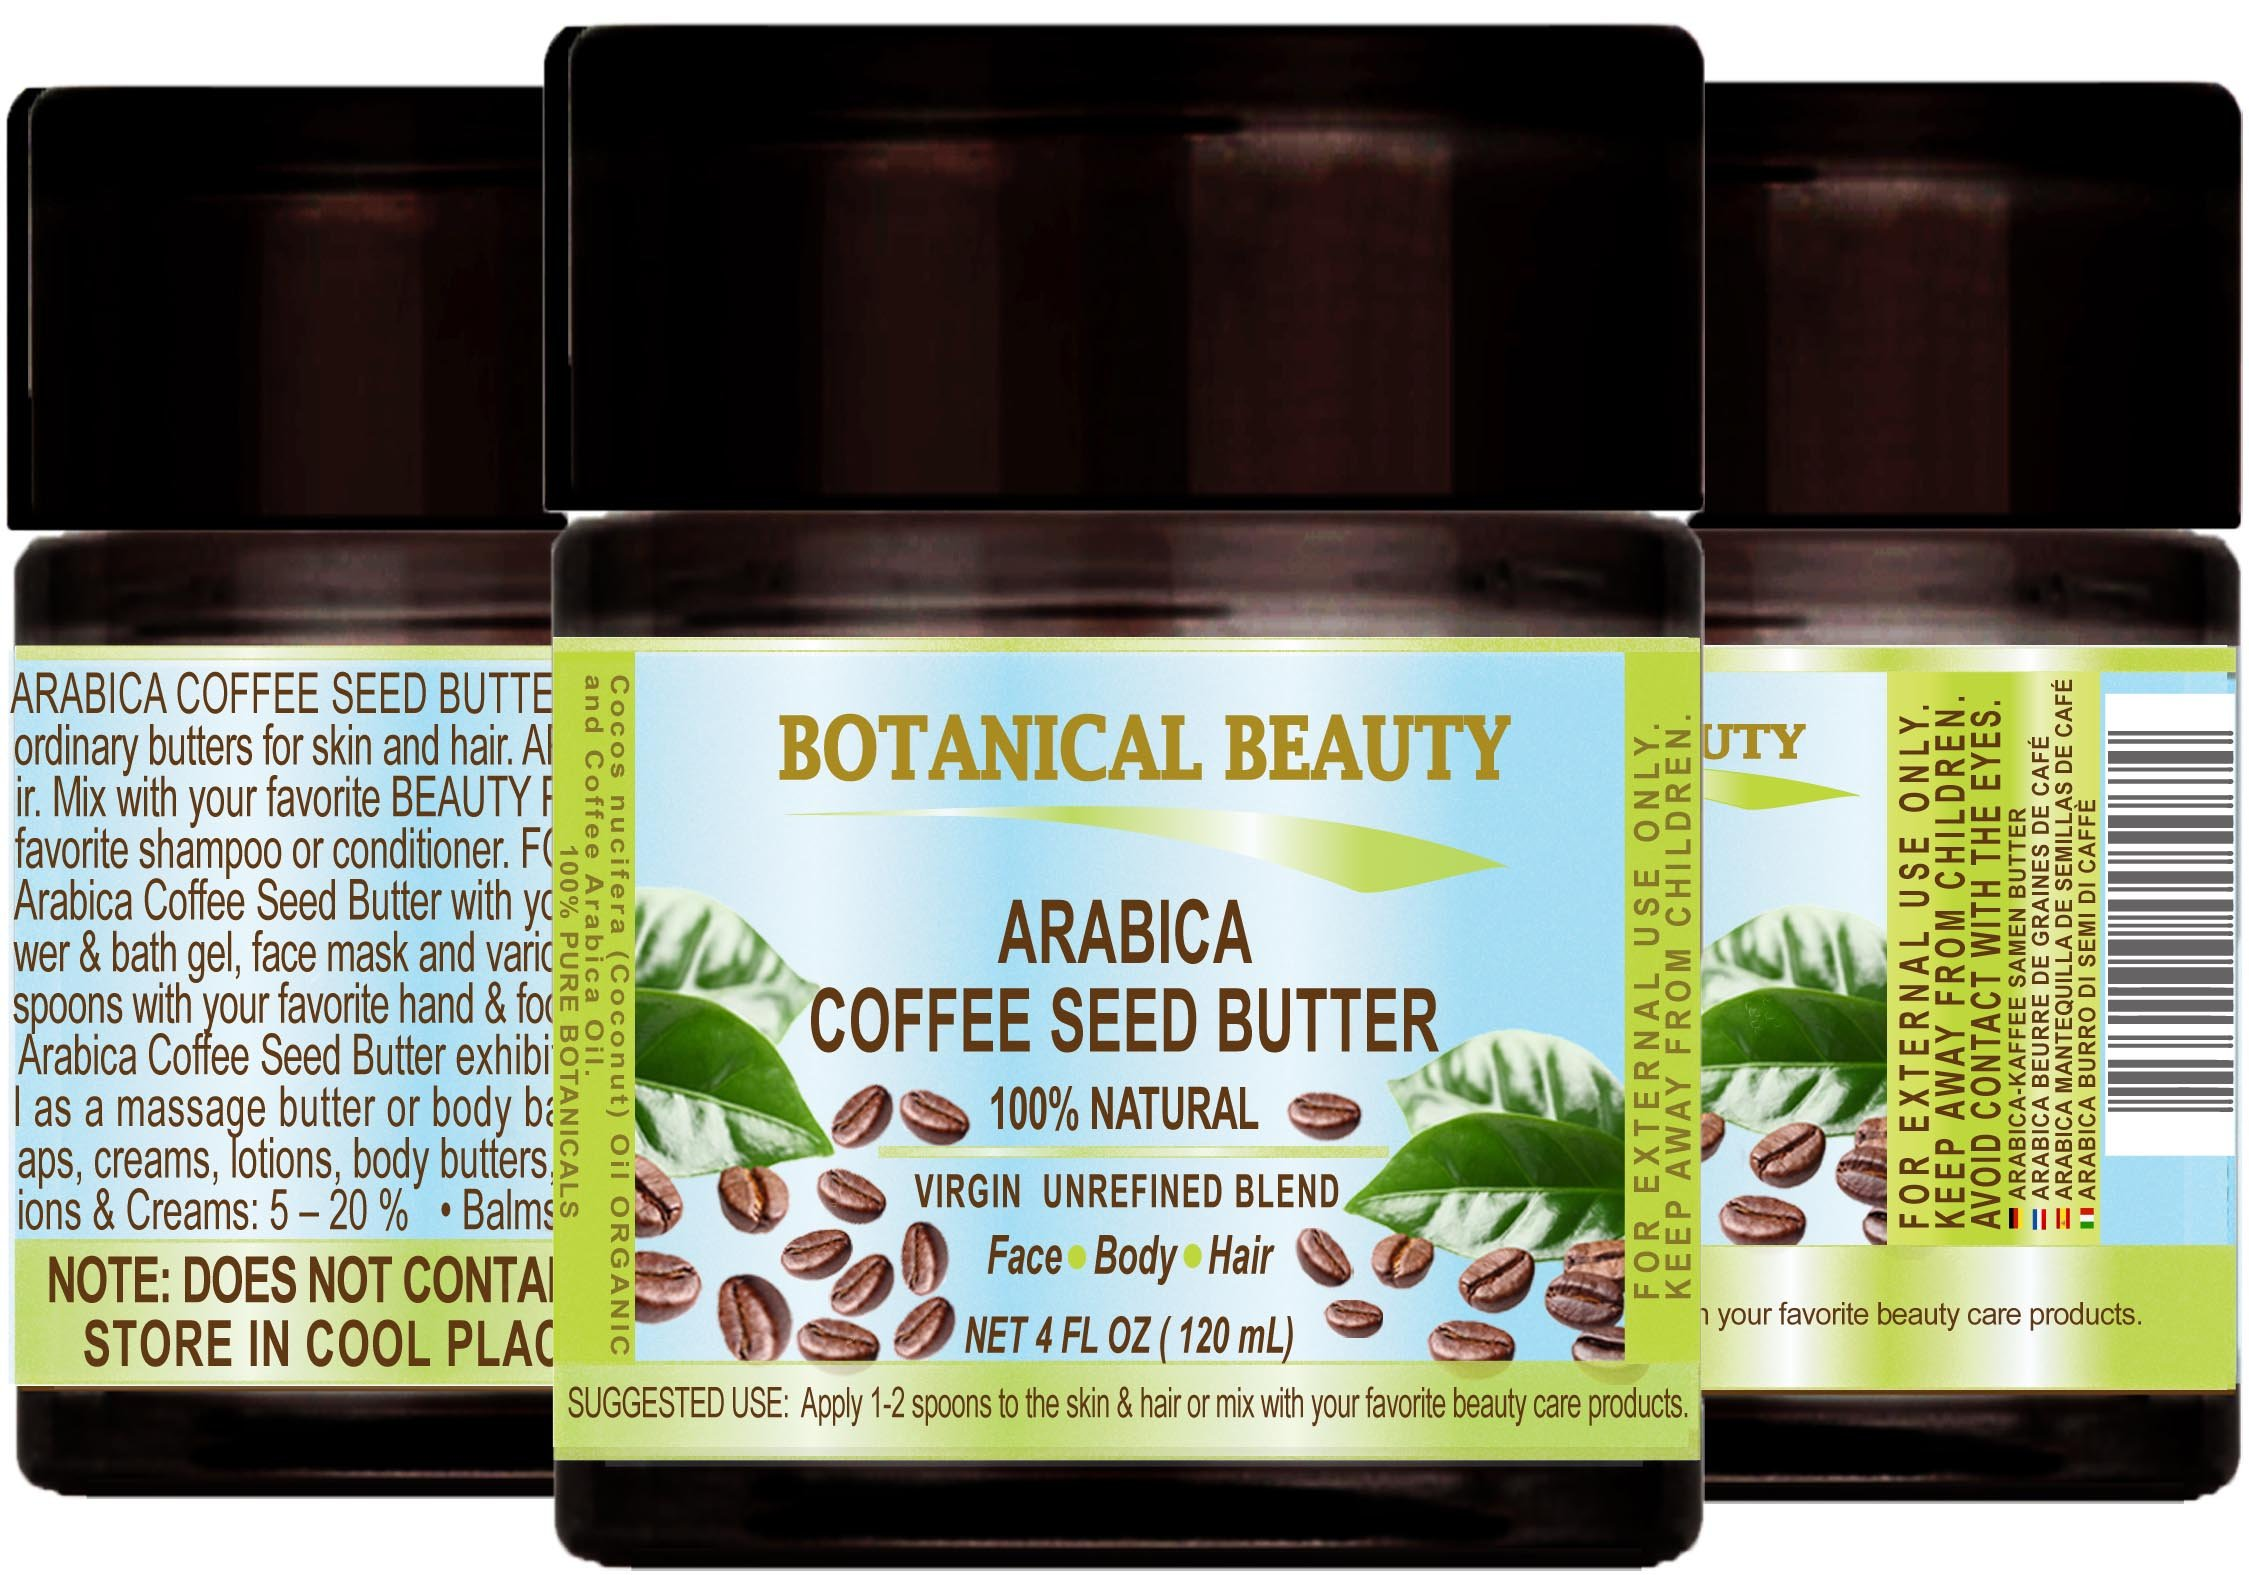 """ARABICA COFFEE SEED BUTTER 100 % Natural / 100% PURE BOTANICALS. VIRGIN/ UNREFINED BLEND. Cold Pressed. 4 Fl.oz.- 120 ml. For Skin, Hair and Nail Care. """"One of the best butters to reduce wrinkles, puffiness, dark circles. Powerful Anti-Cellulite."""""""